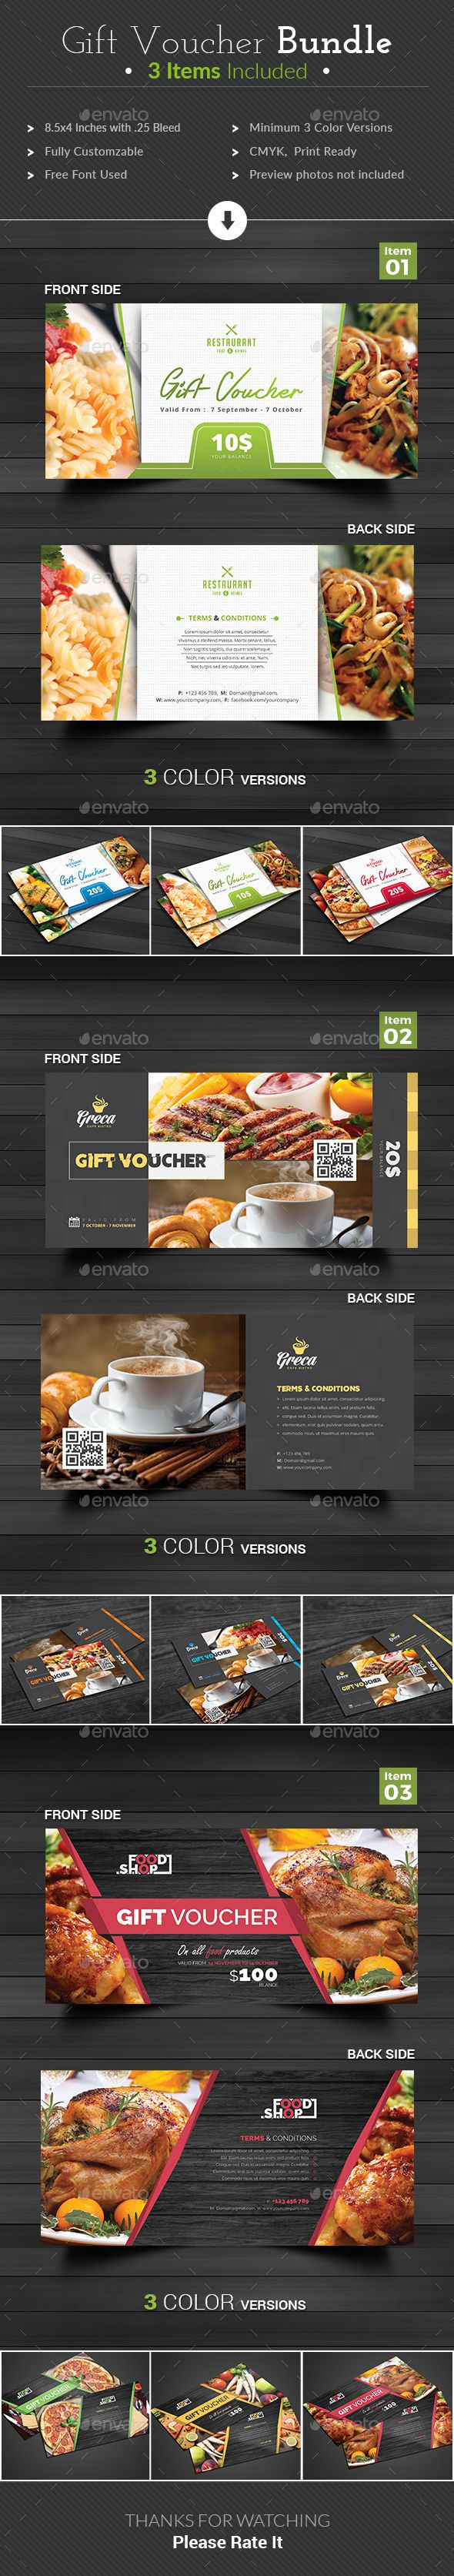 Gift Voucher  — PSD Template #fashion voucher #photography voucher • Download ➝ https://graphicriver.net/item/gift-voucher/18370346?ref=pxcr